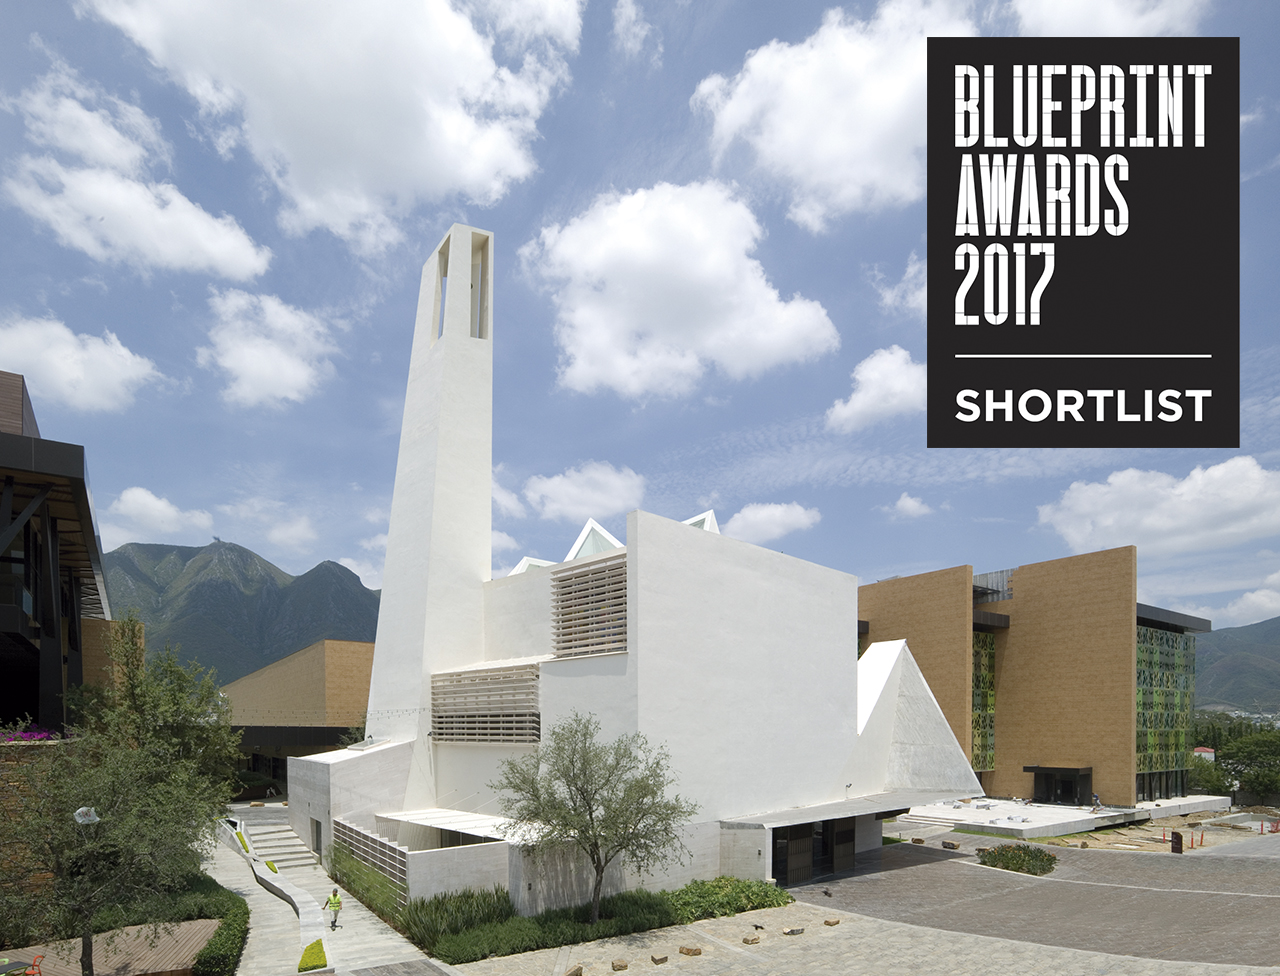 Moneo brock international architecture and design studio madrid shortlisted at blueprint awards 2017 malvernweather Choice Image